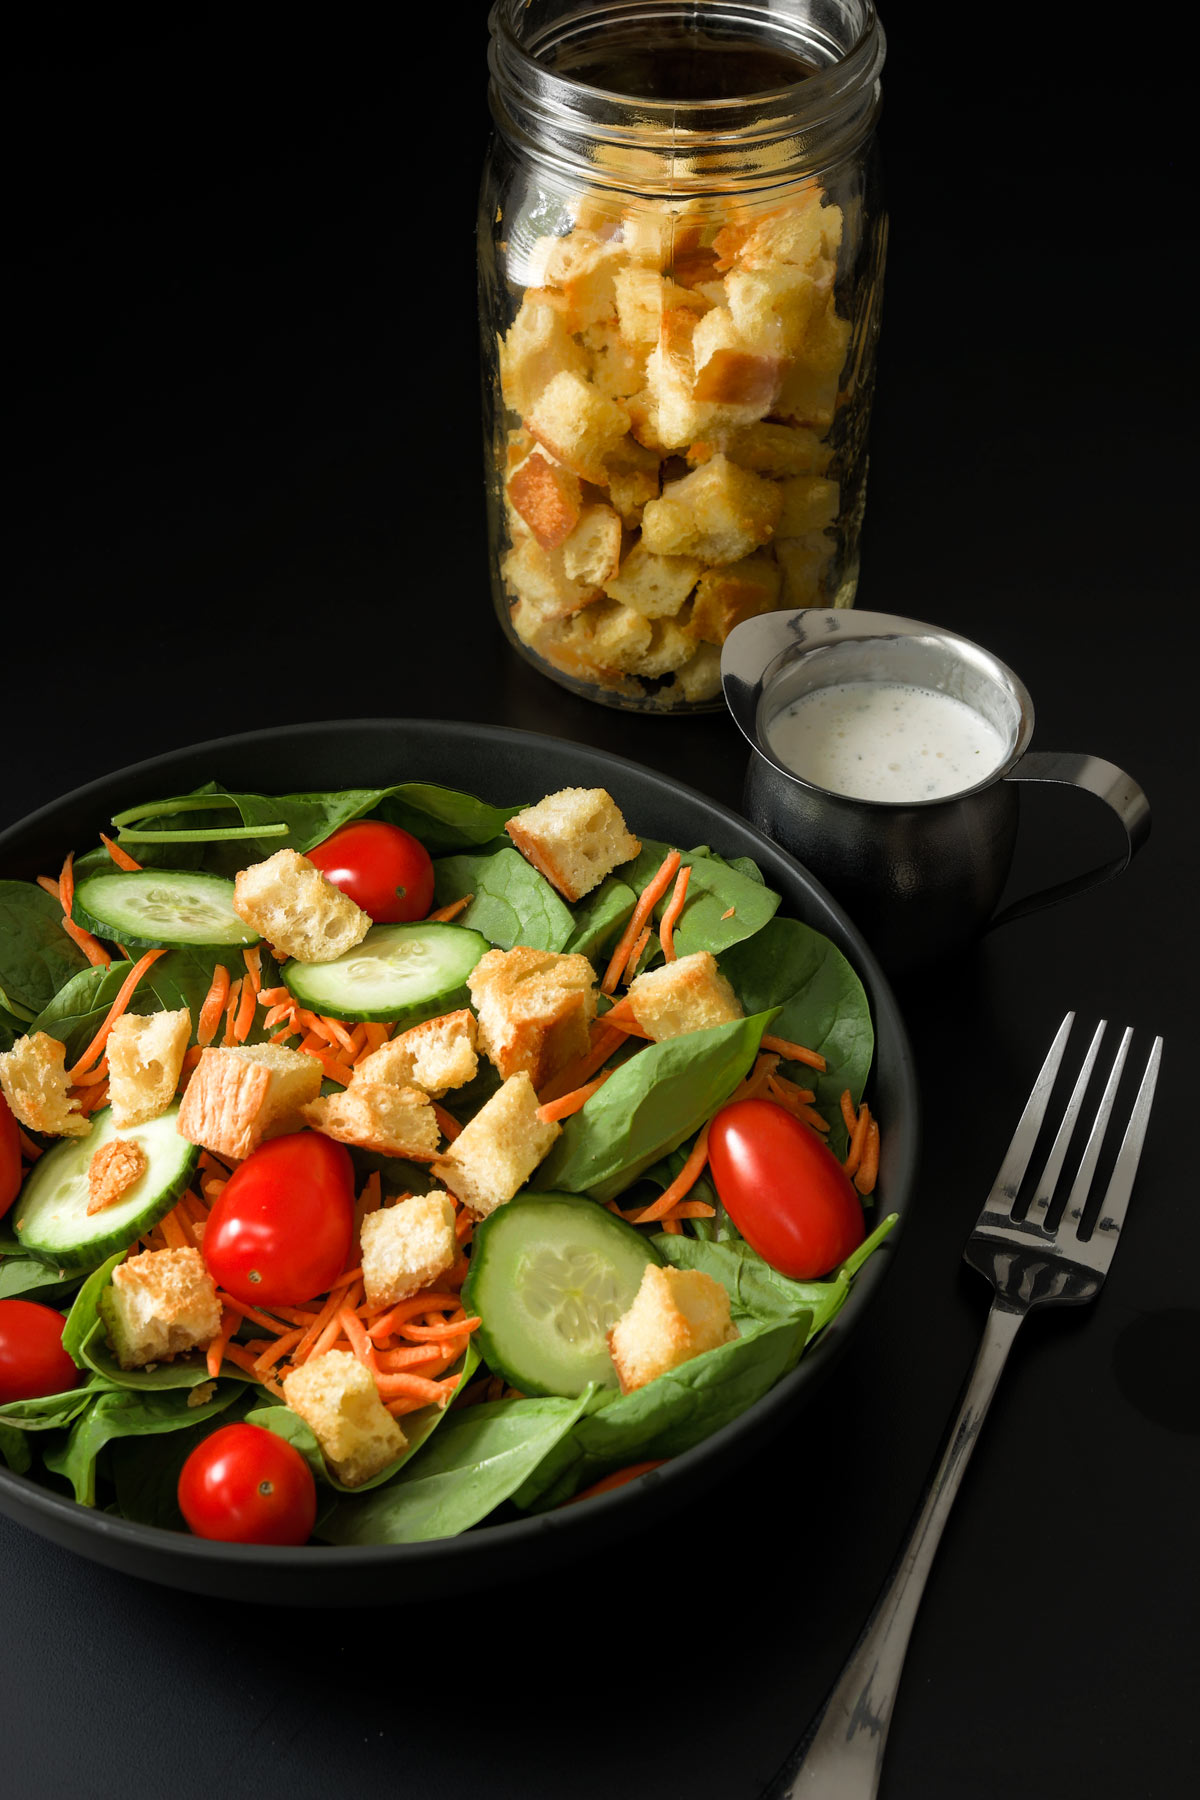 spinach salad in black bowl topped with croutons near a mason jar of croutons, a fork, and a dish of ranch dressing.